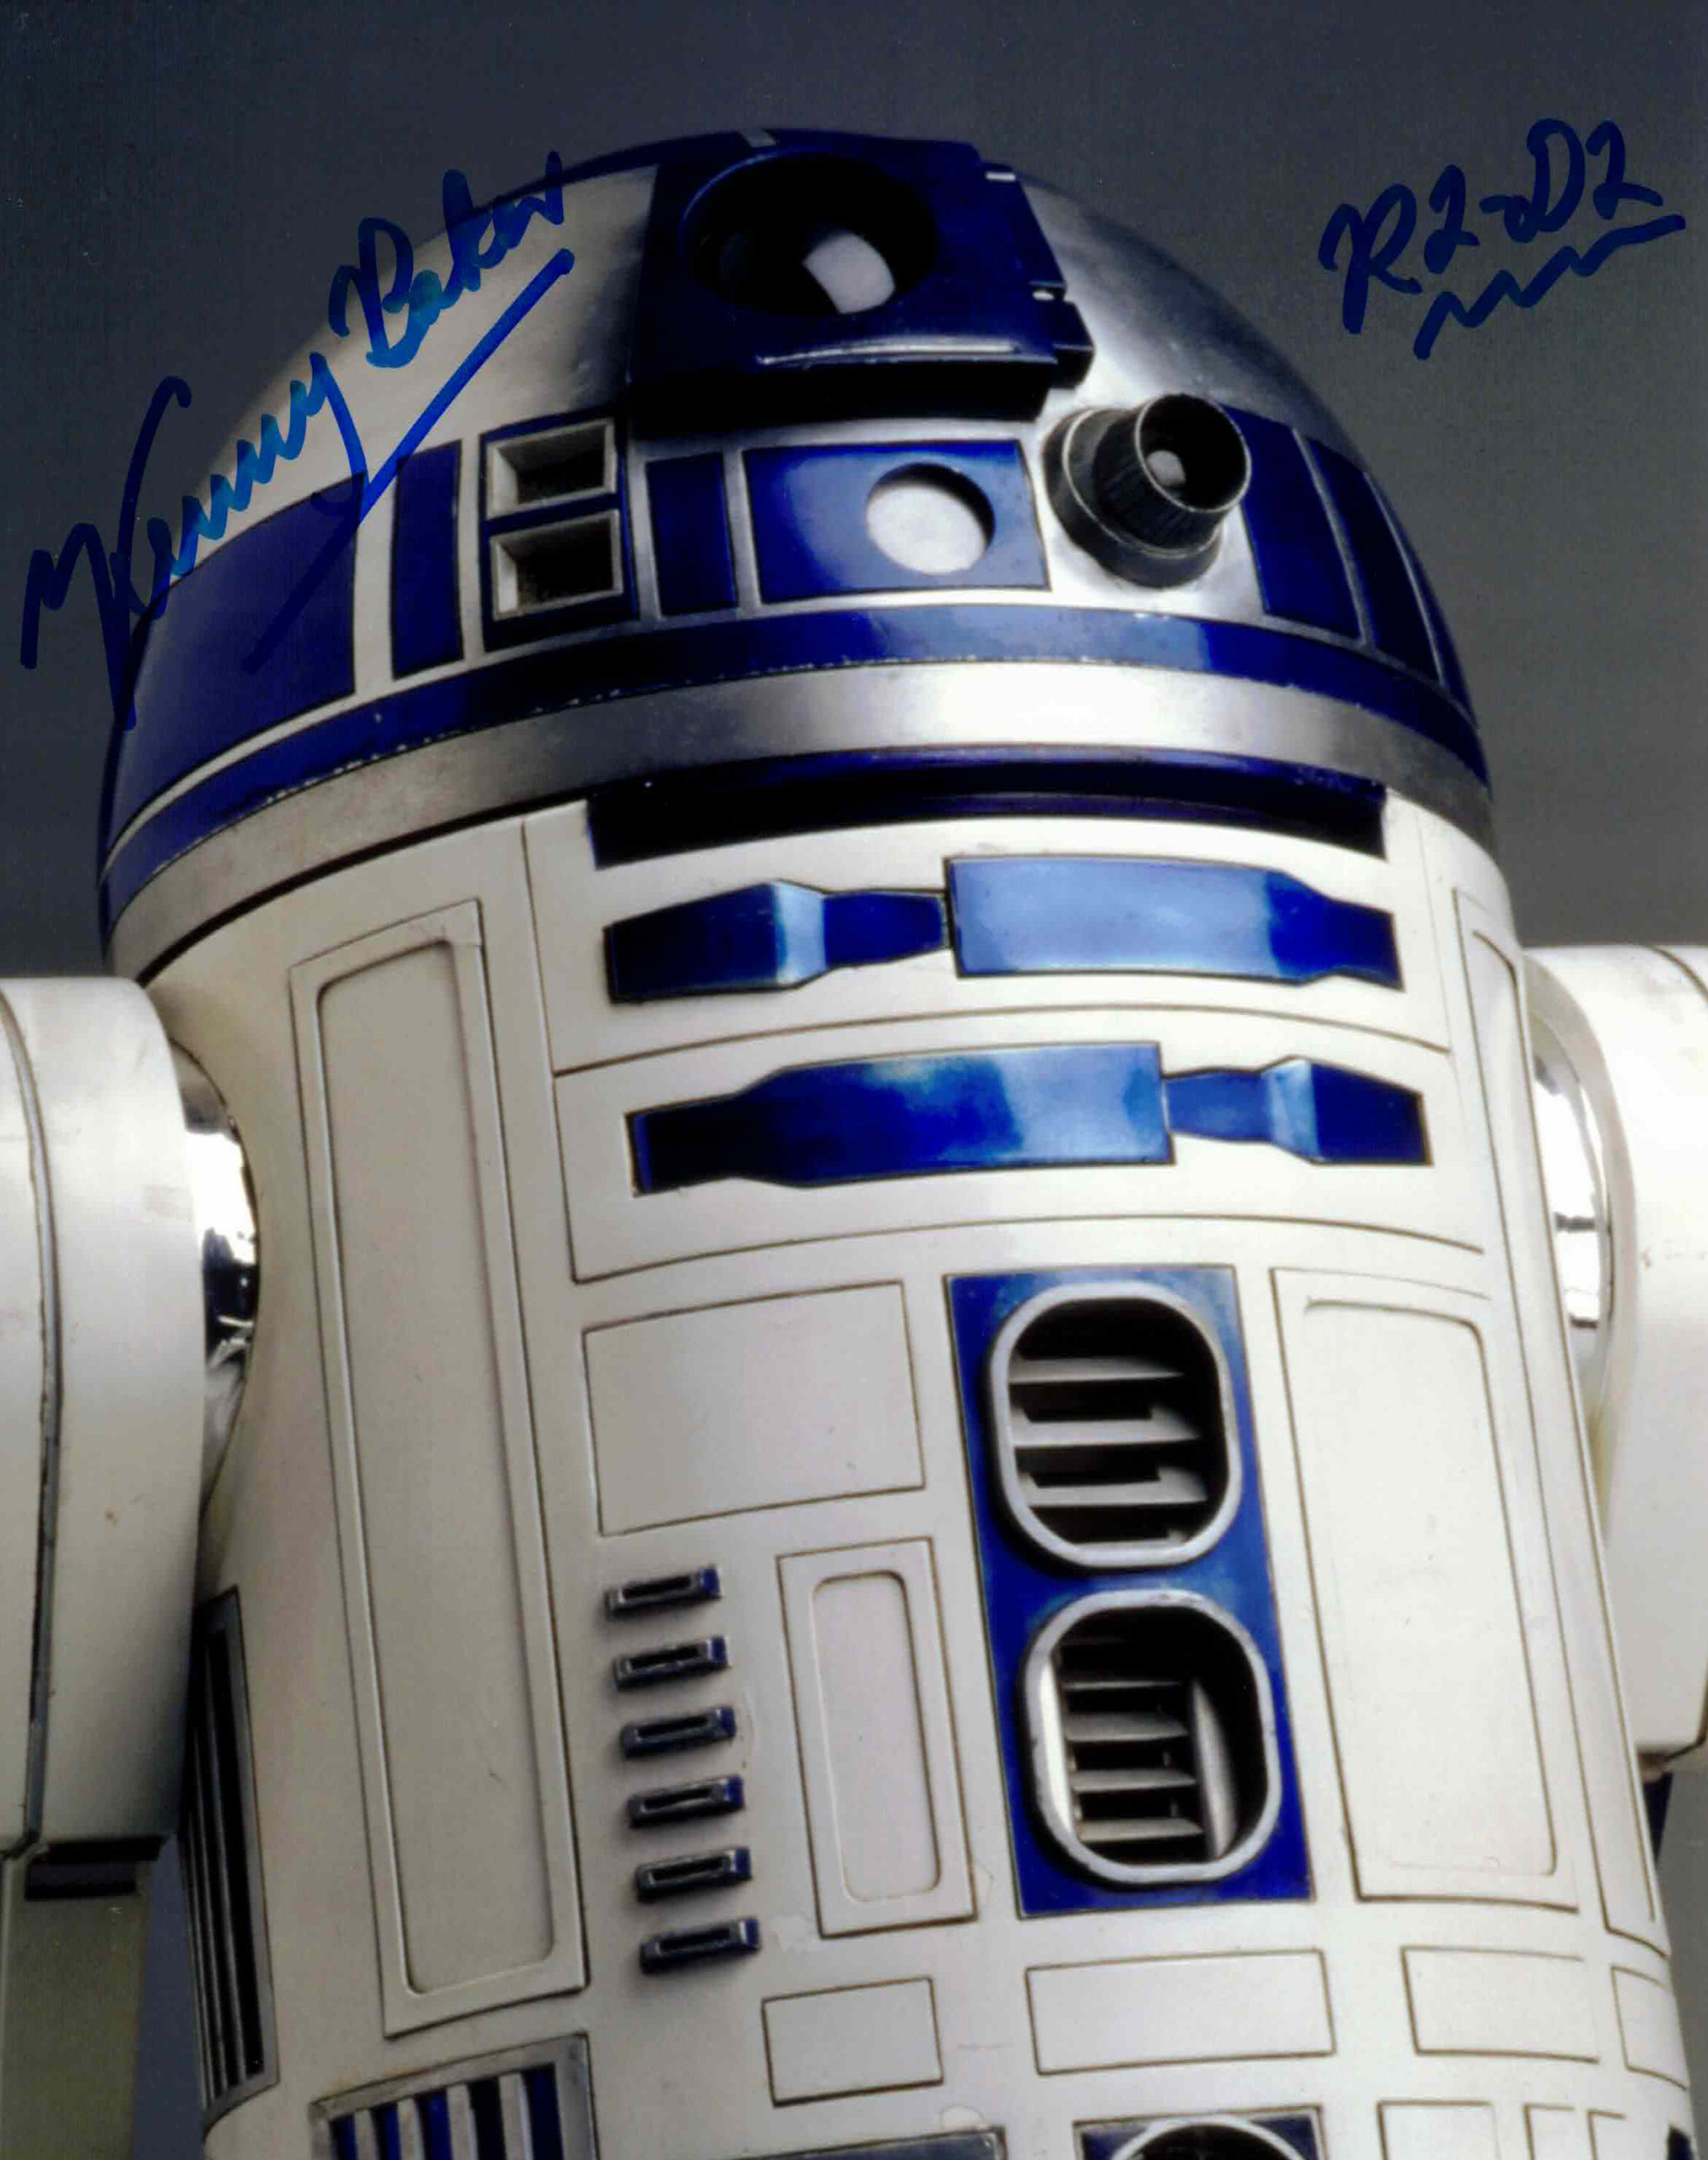 Kenny Baker / R2-D2, Star Wars - autogram